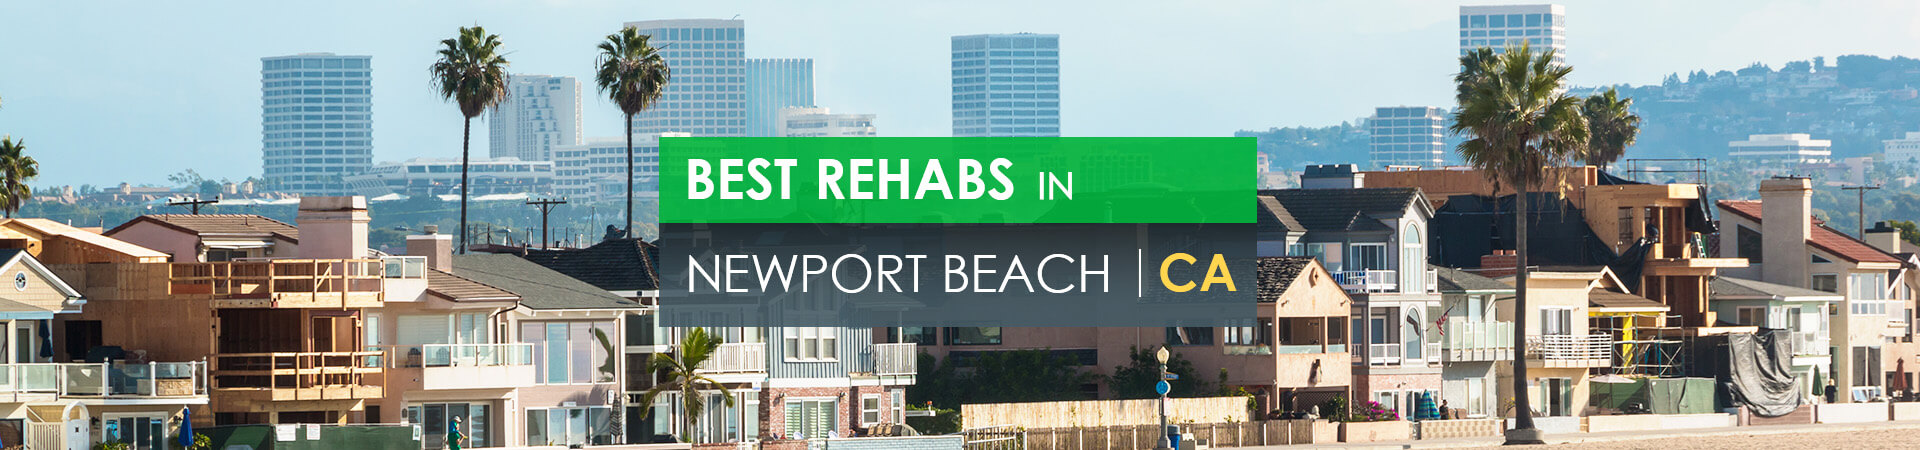 Best rehabs in Newport Beach, CA